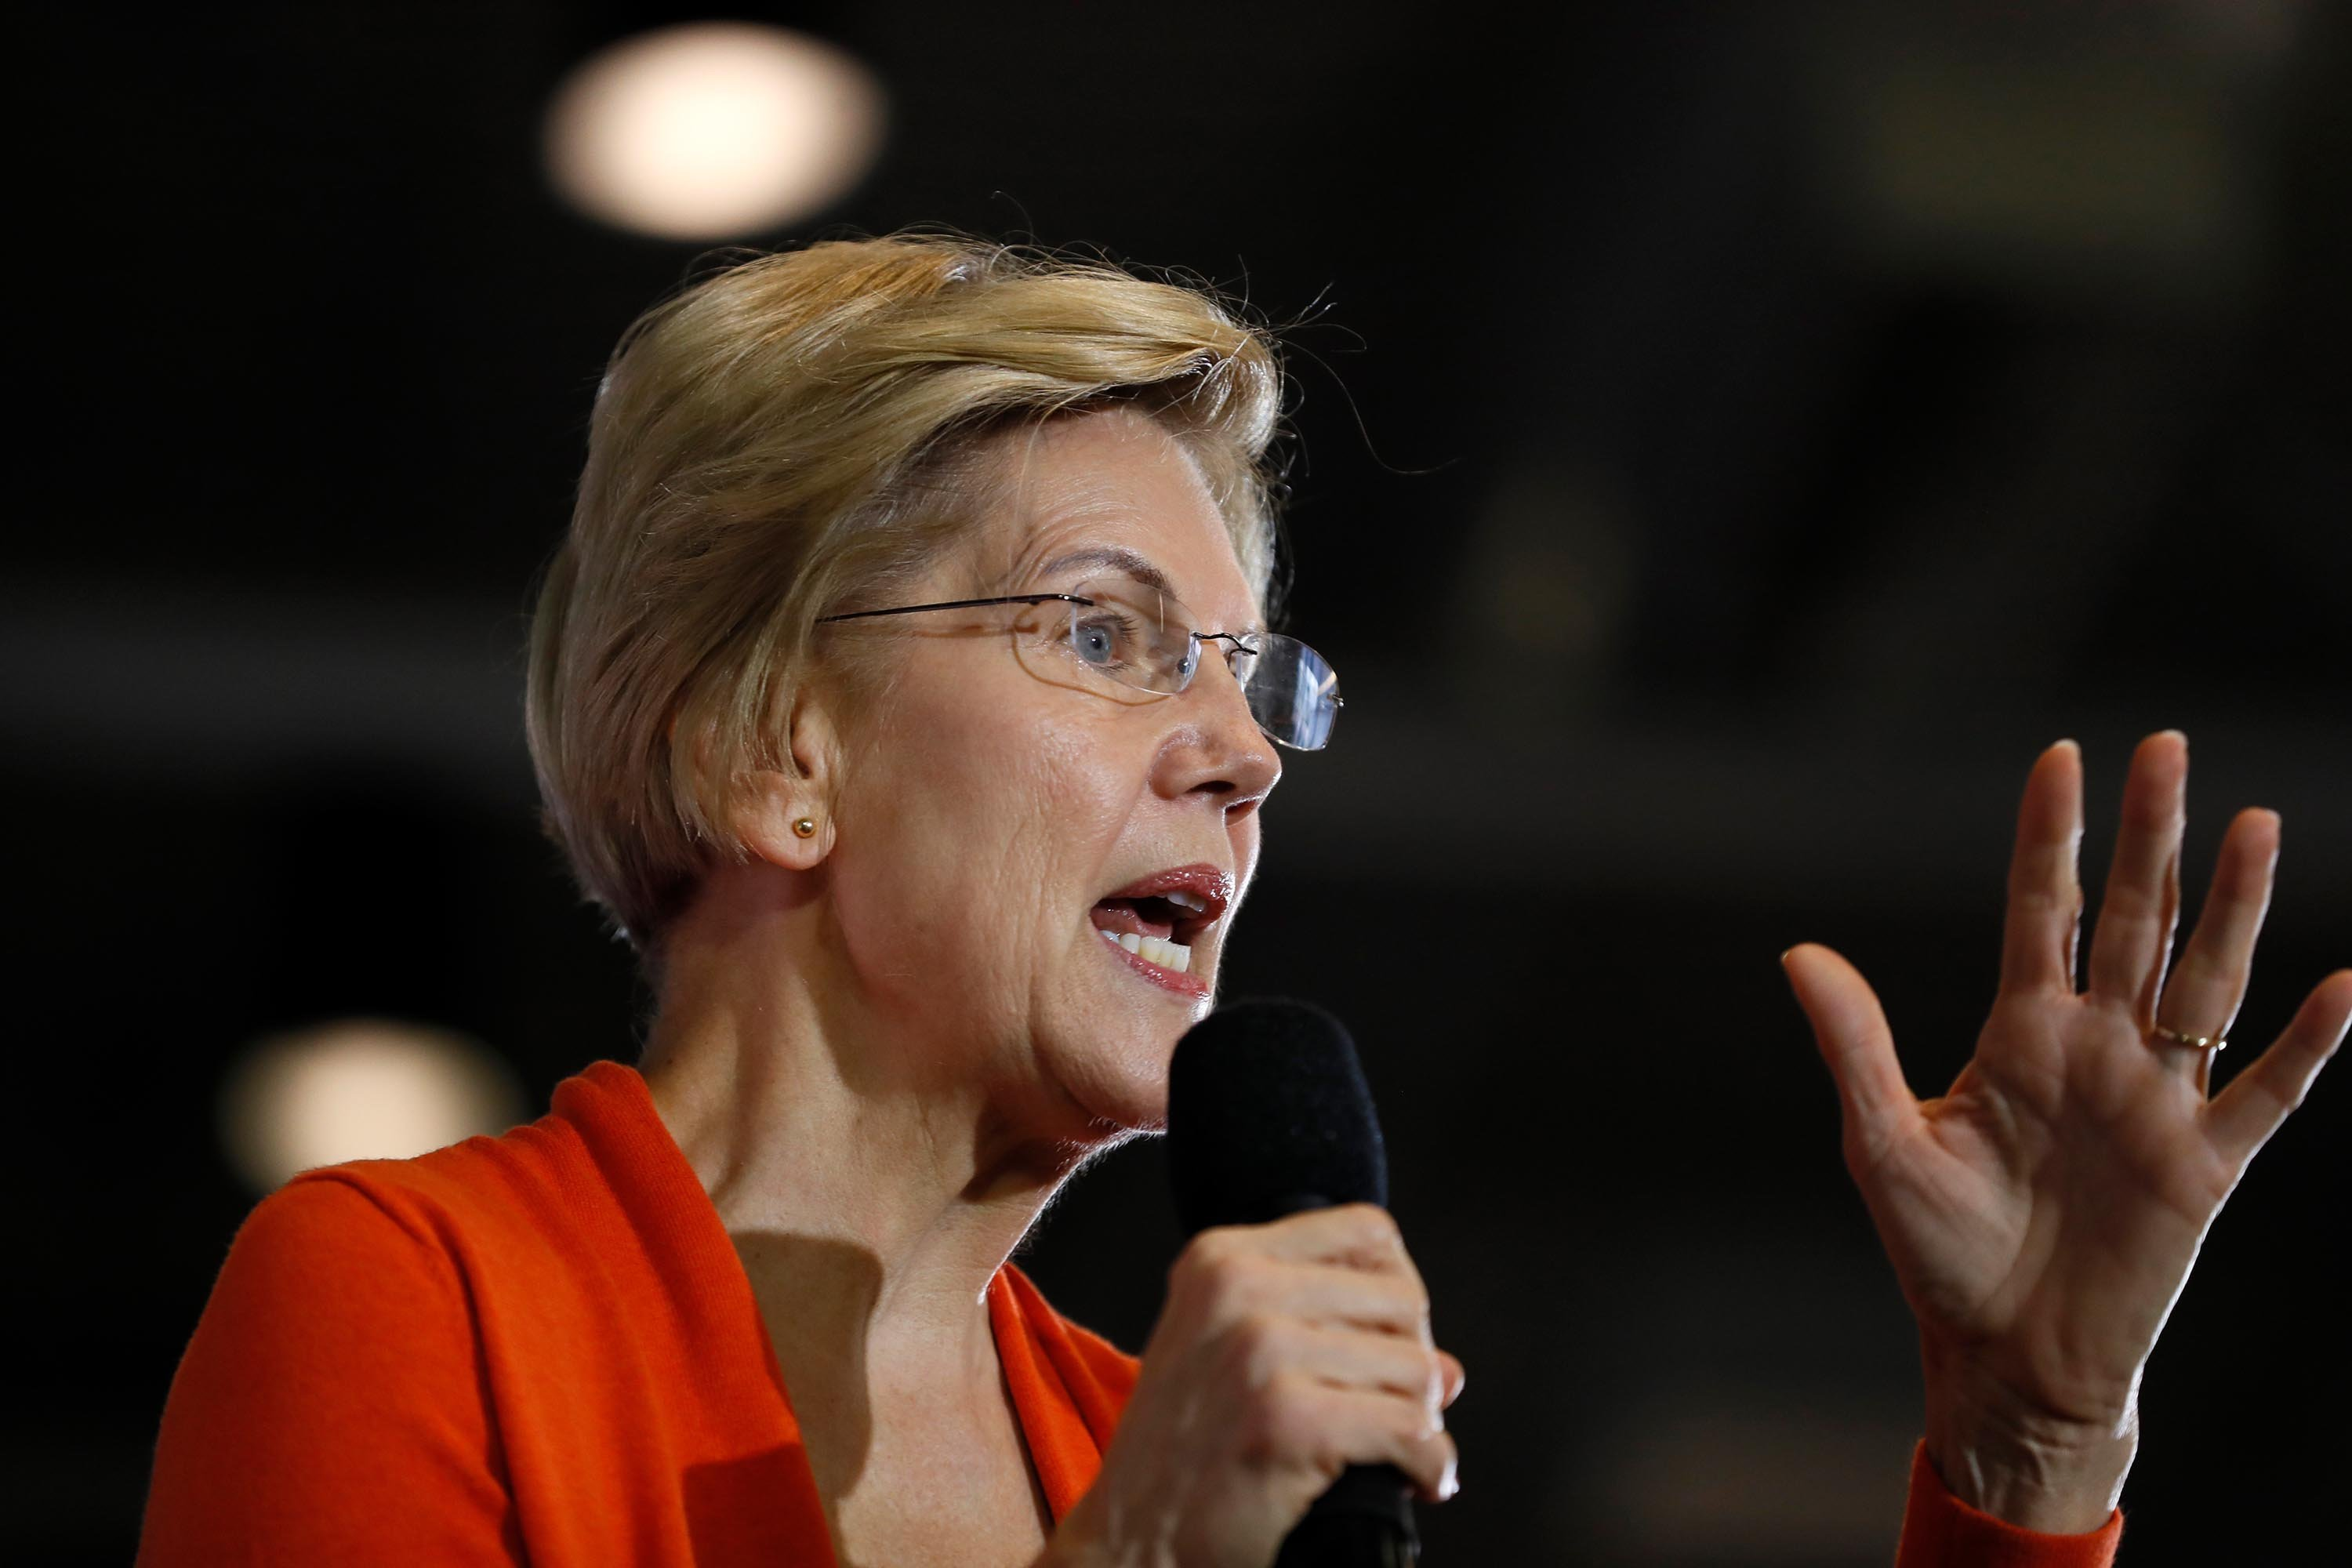 Elizabeth Warren on getting men to vote for a woman: 'How about we give them a tough smart woman to vote for'